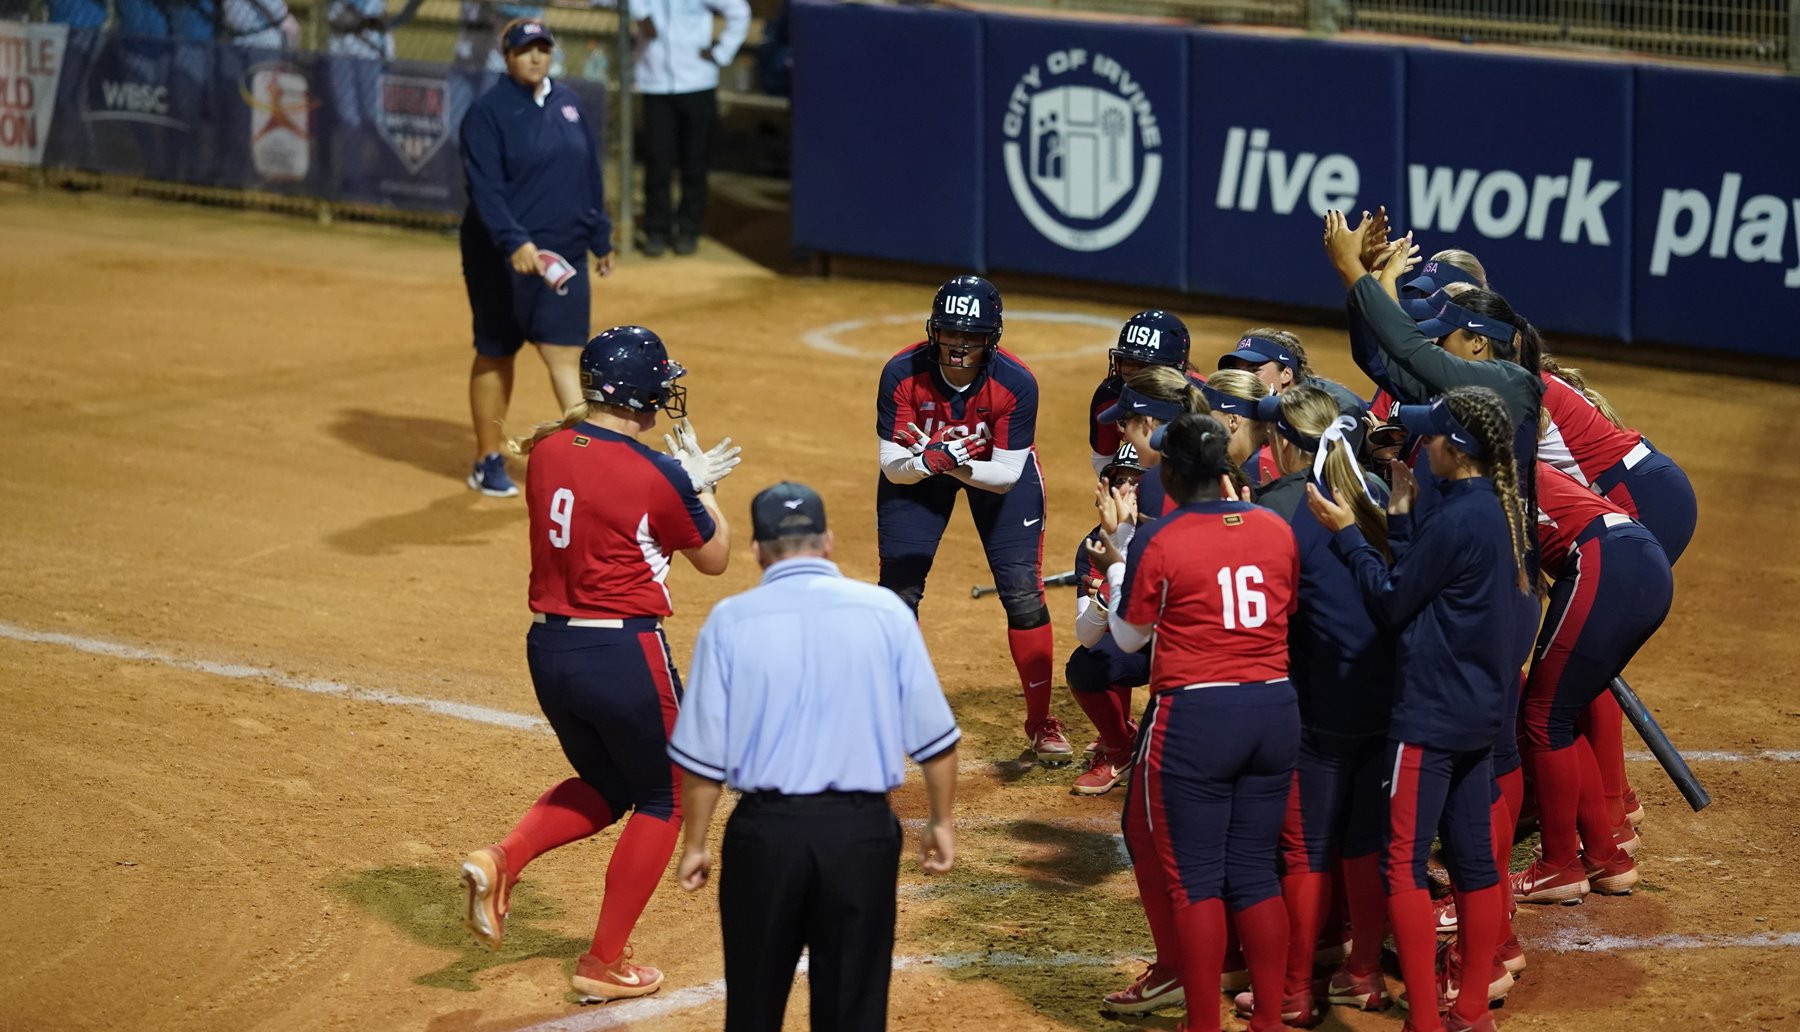 Hosts the United States were among the four teams to secure their place in the super round as action continued today at the Under-19 Women's Softball World Cup in Irvine ©WBSC